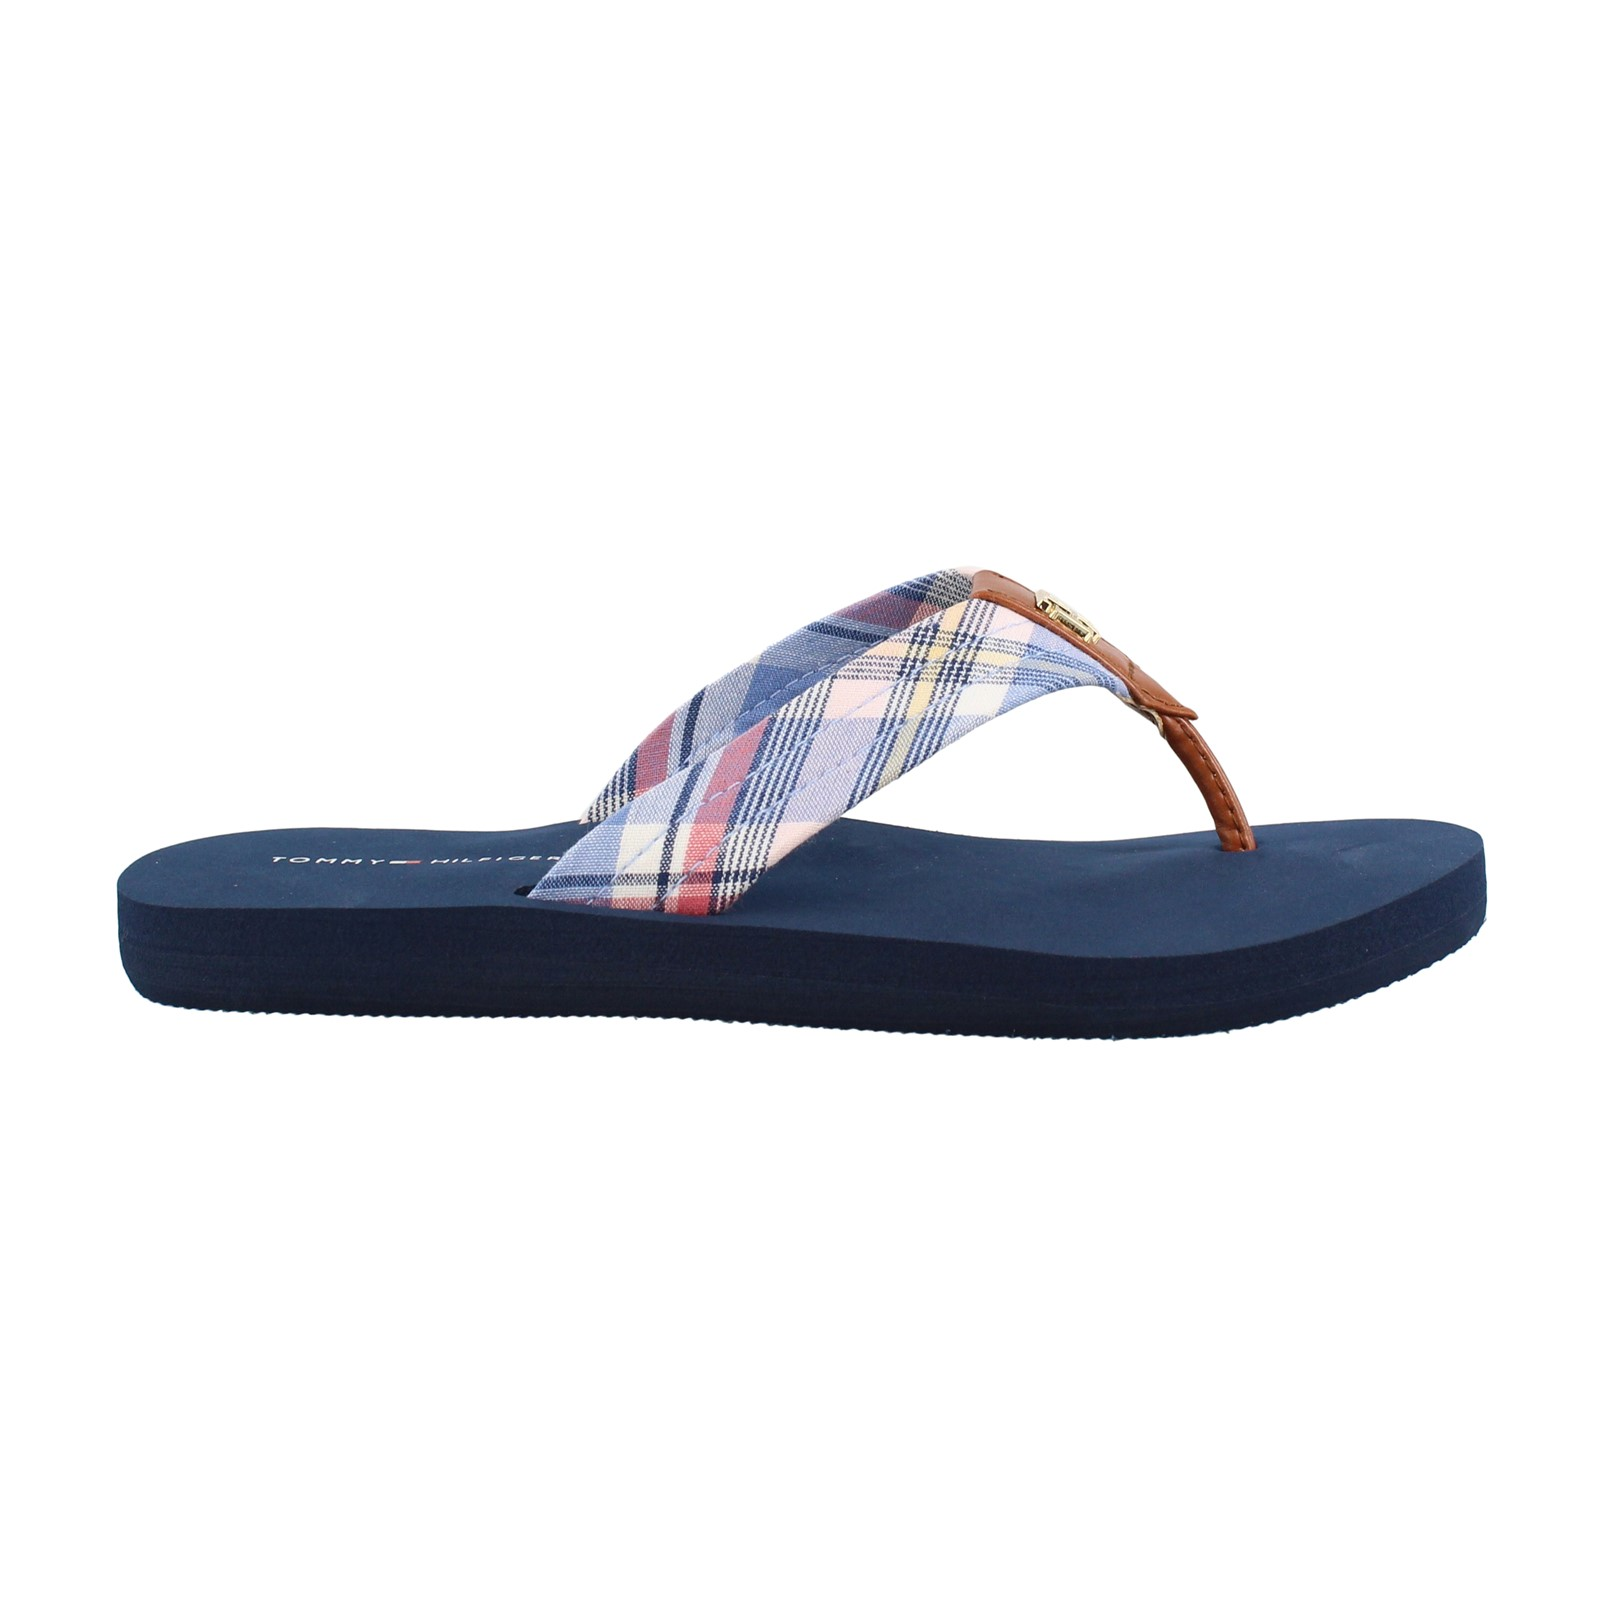 Women's Tommy Hilfiger, Camary Thong Sandals